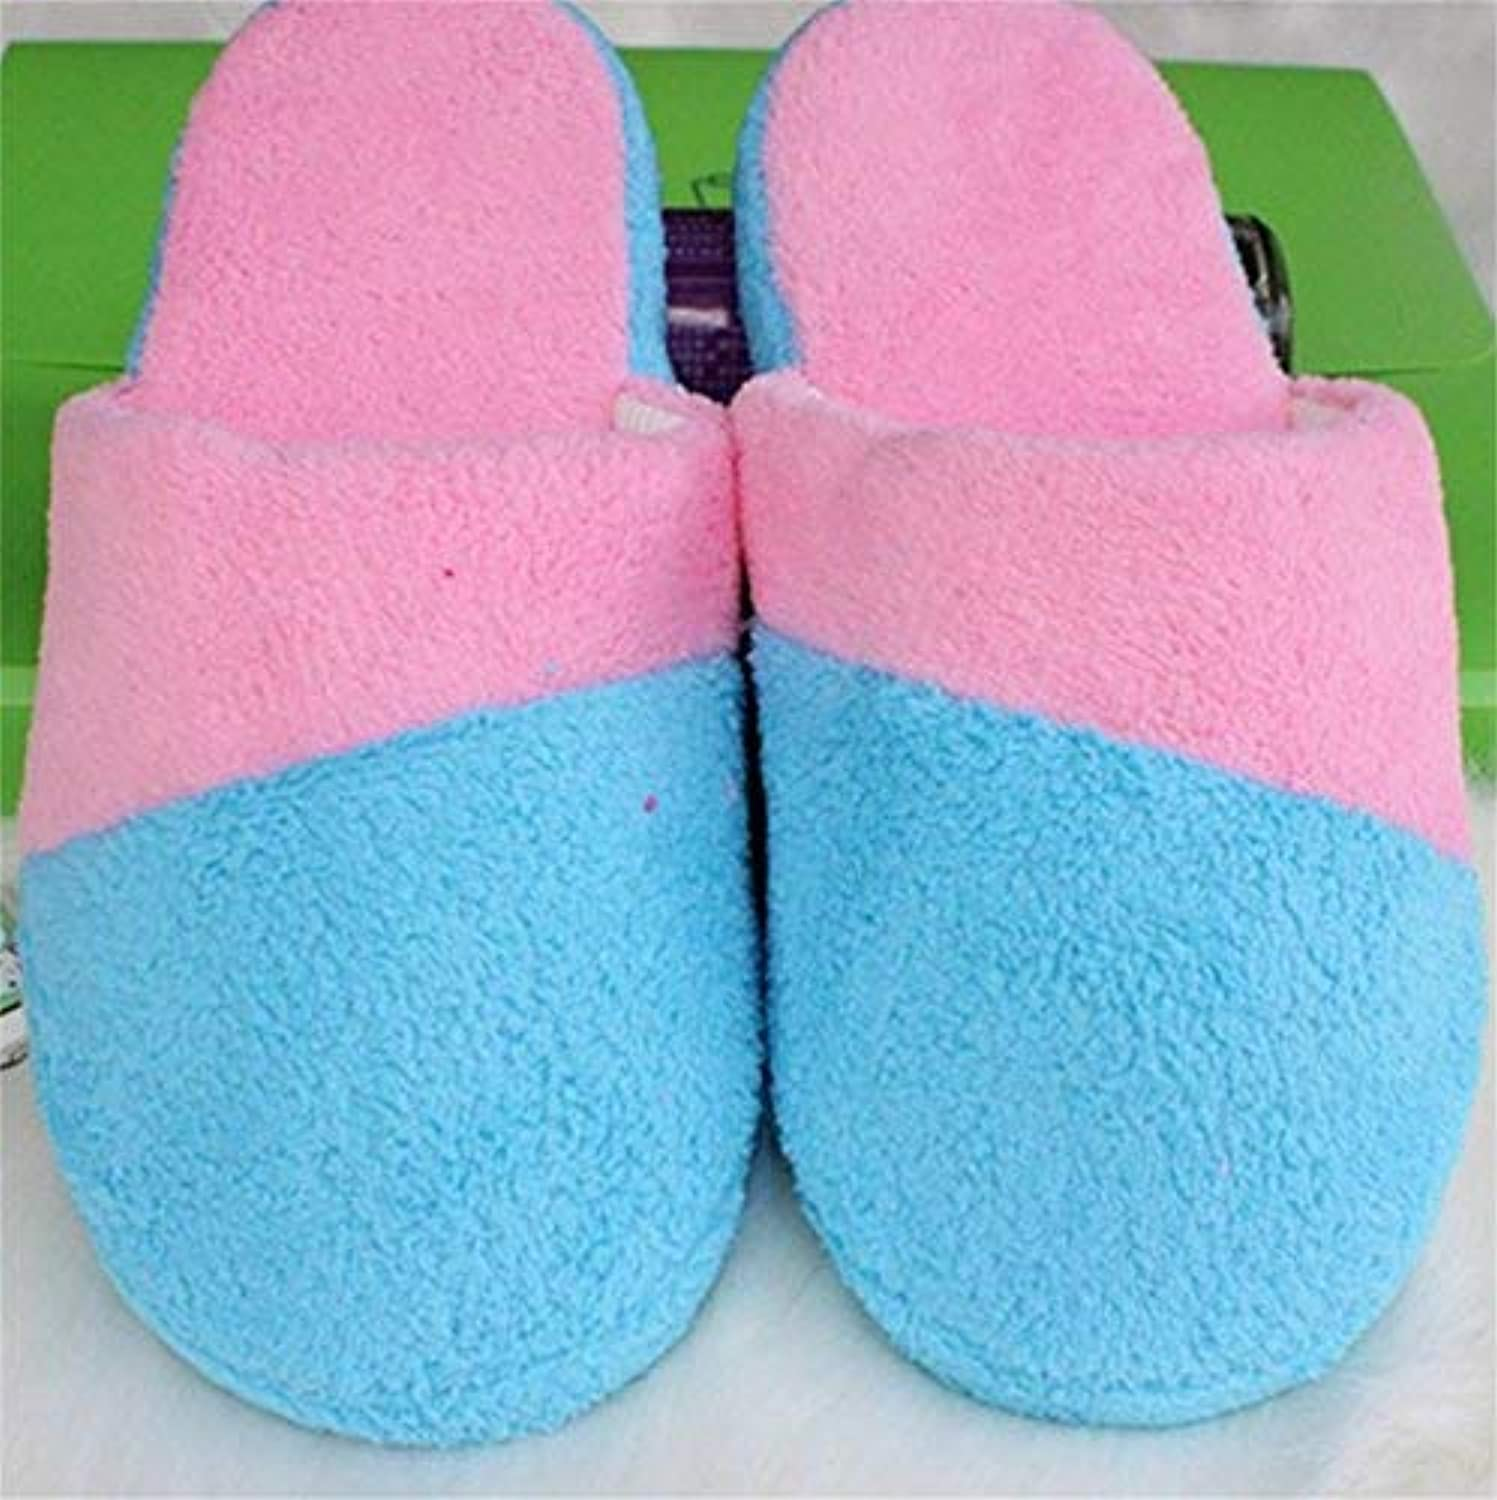 Lady Slippers Ladies Casual Cotton Slippers of Soft Keep Warm in Autumn and Winter Patchwork color Stylish Super Soft Plush House Slippers